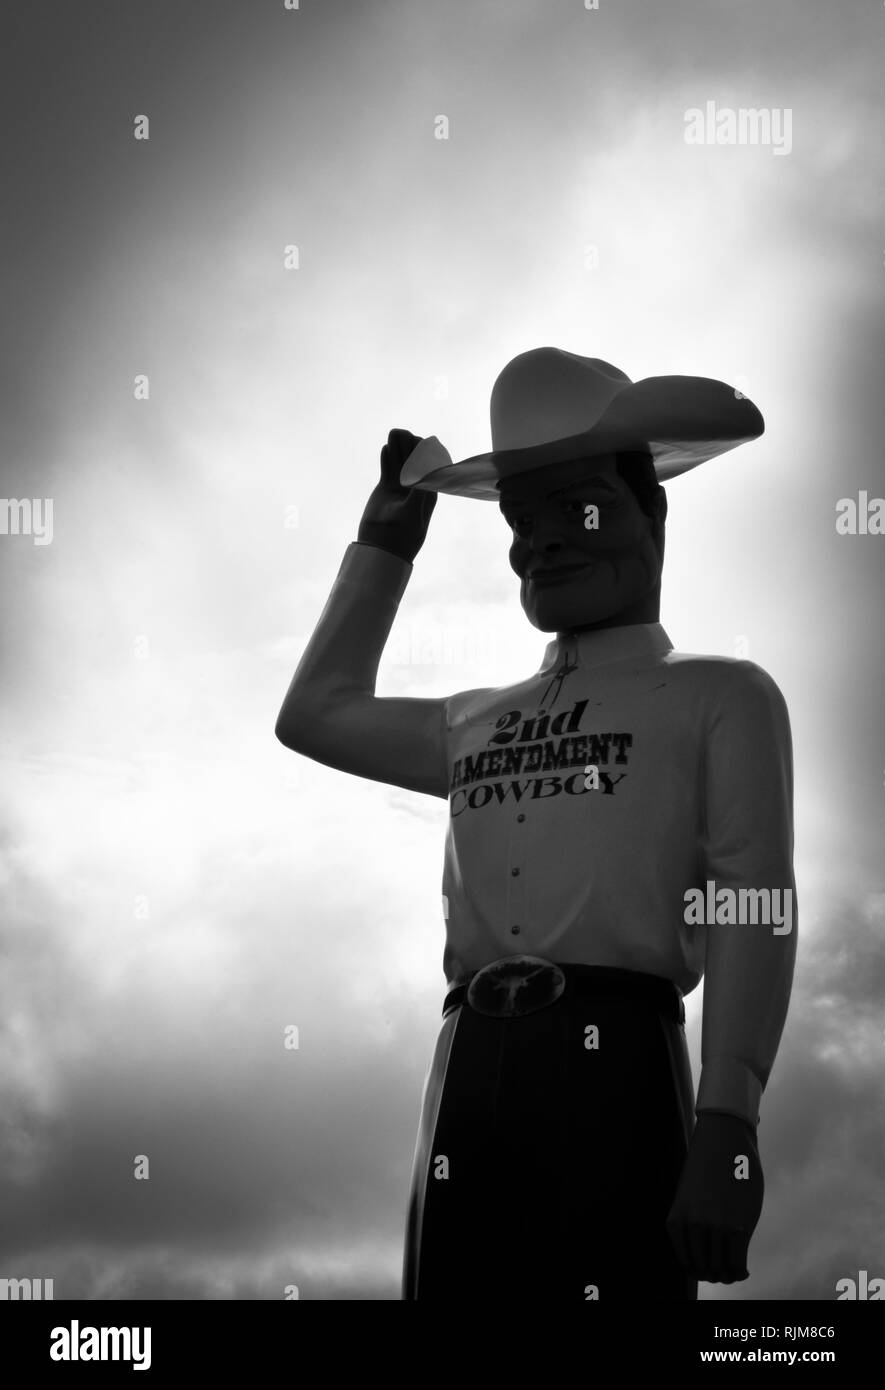 A giant sculpture of a cowboy wearing a 'Second Amendment Cowboy' shirt, tipping his 10 gallon stetson hat as Roadside Attraction near Amarillo, TX - Stock Image